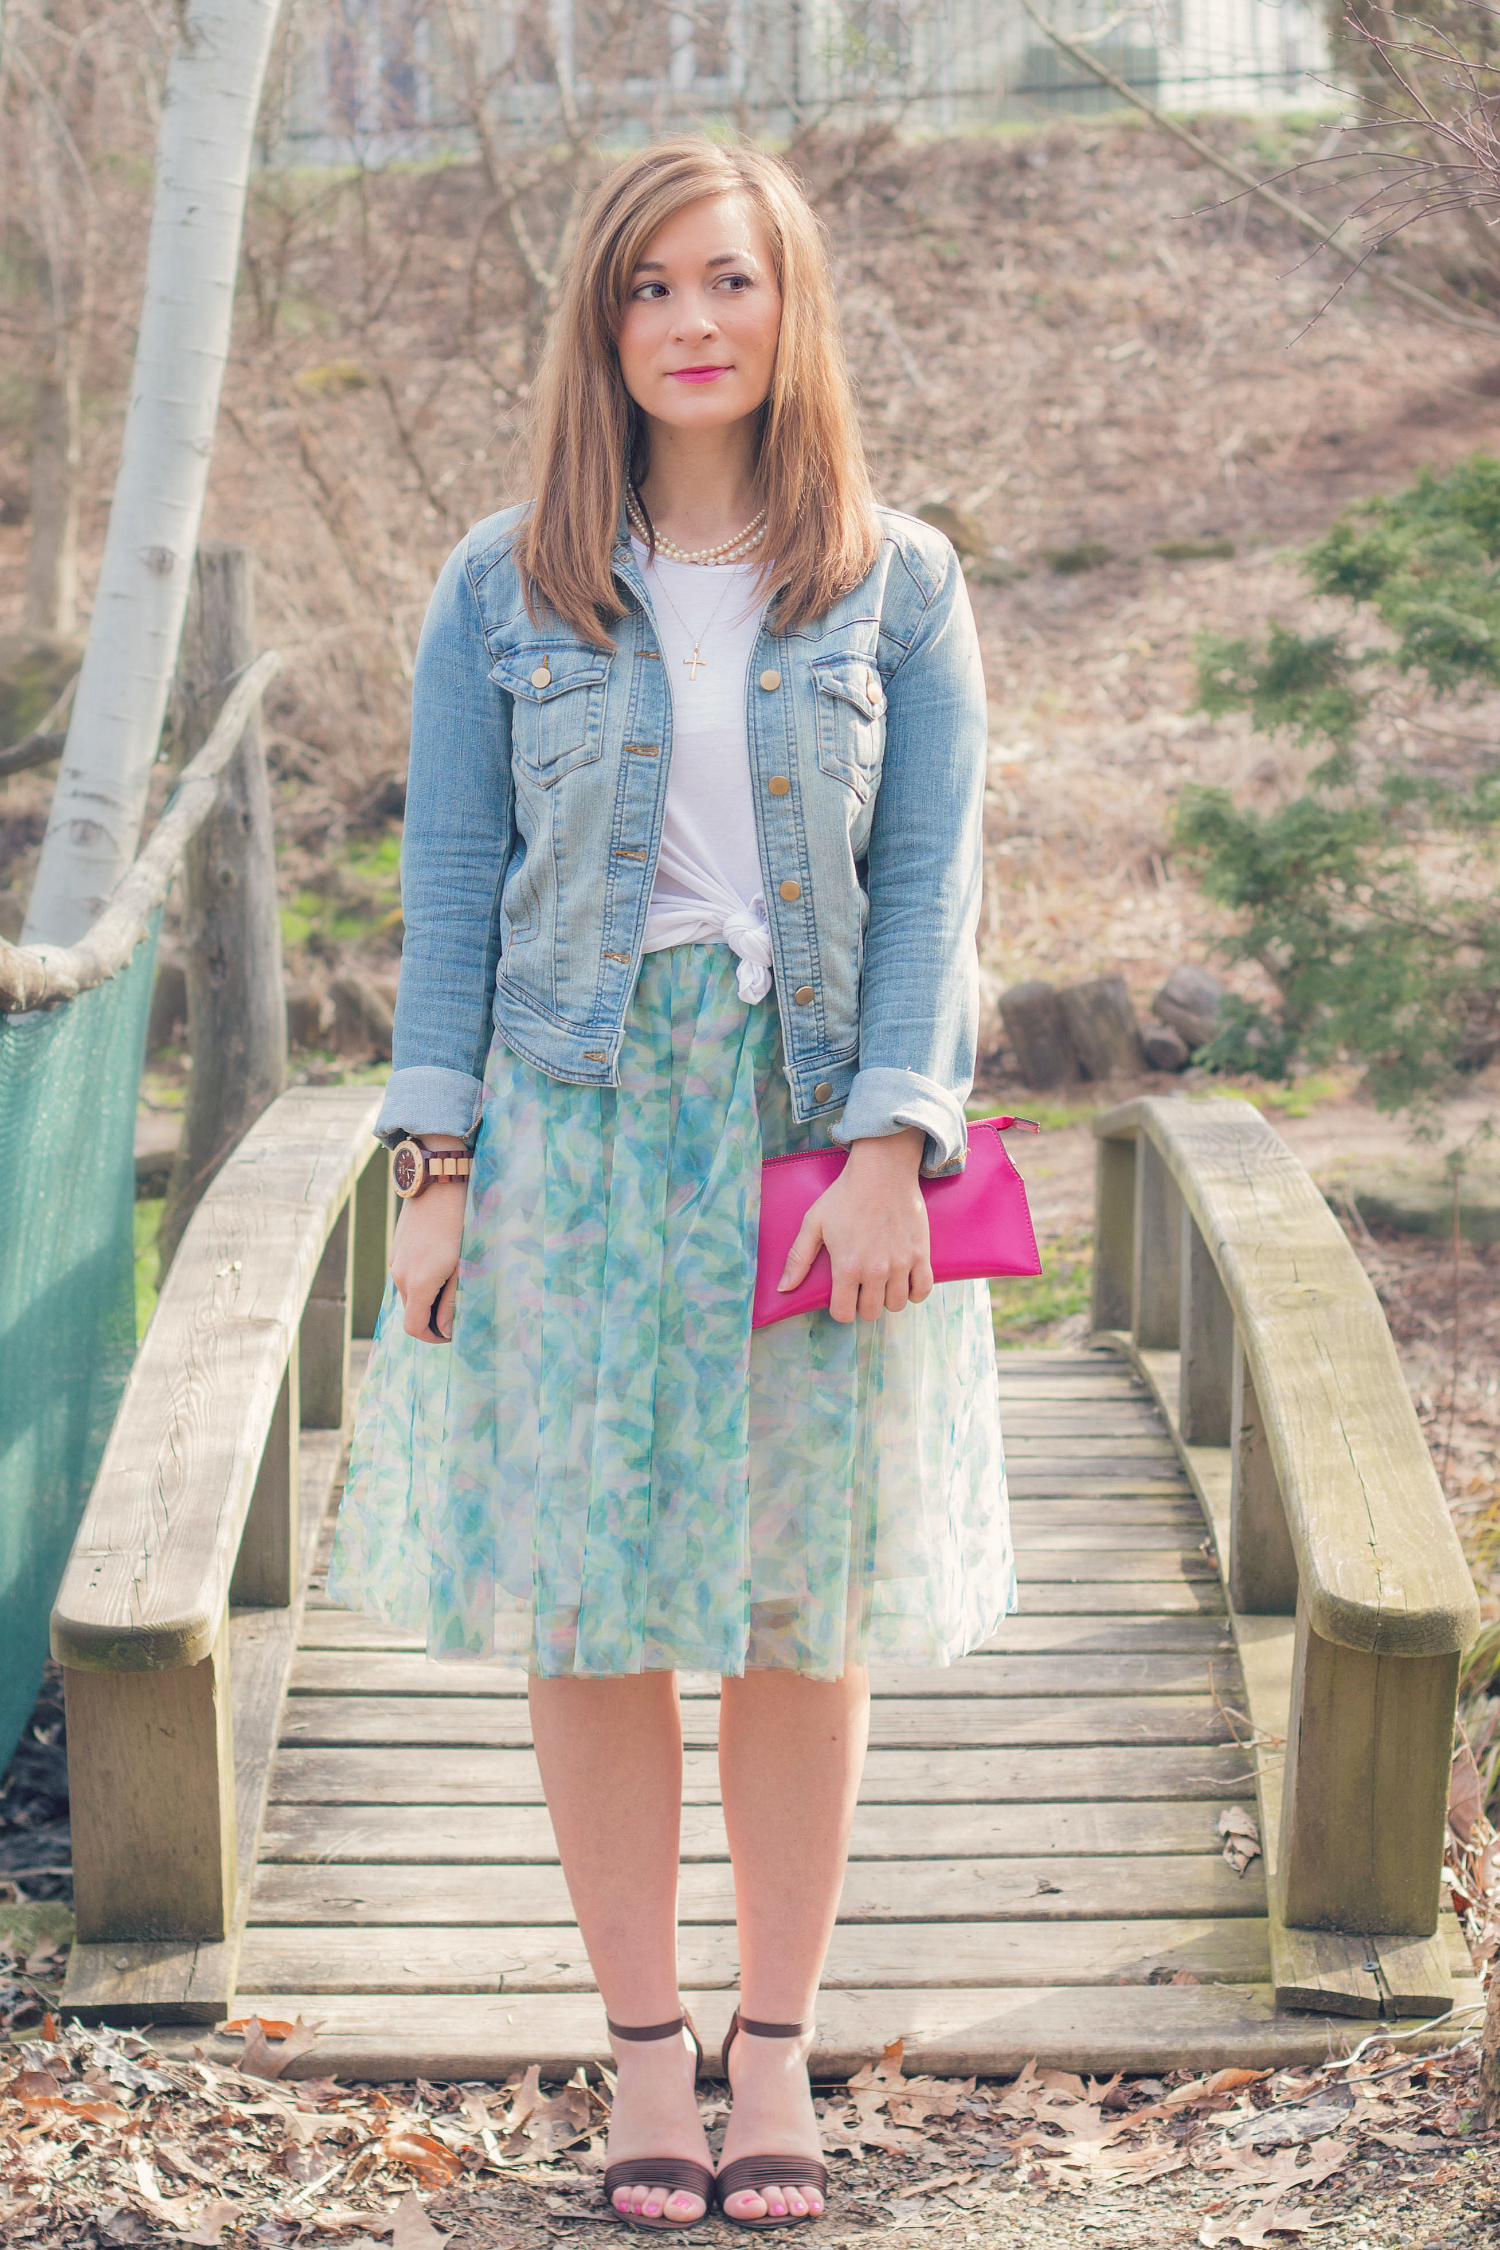 Spring Trends and styles for women